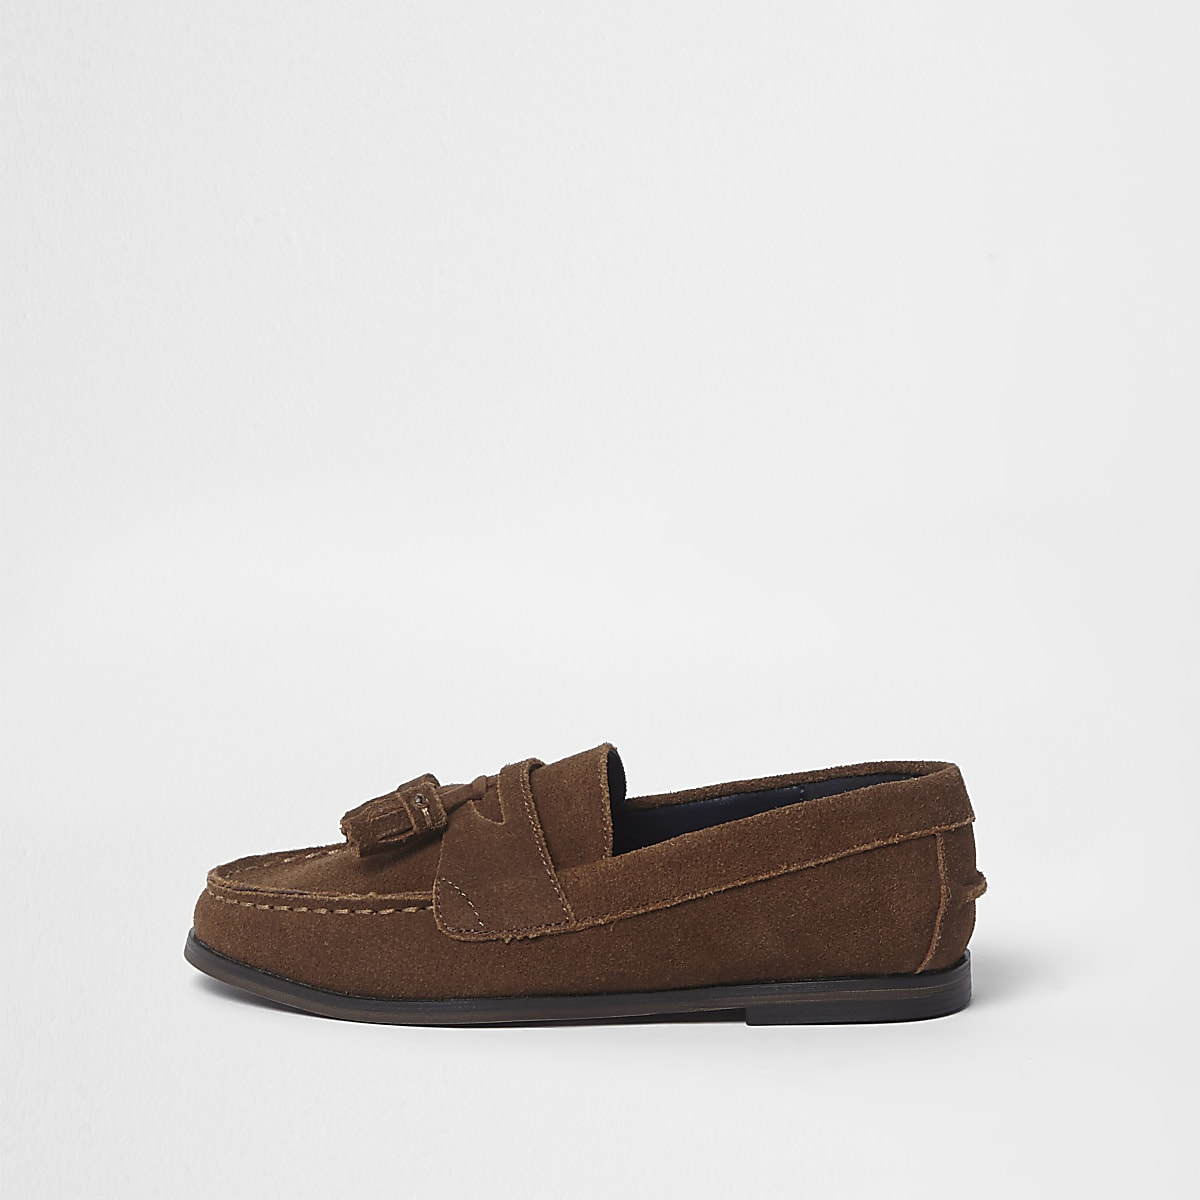 Boys tan suede tassel loafers